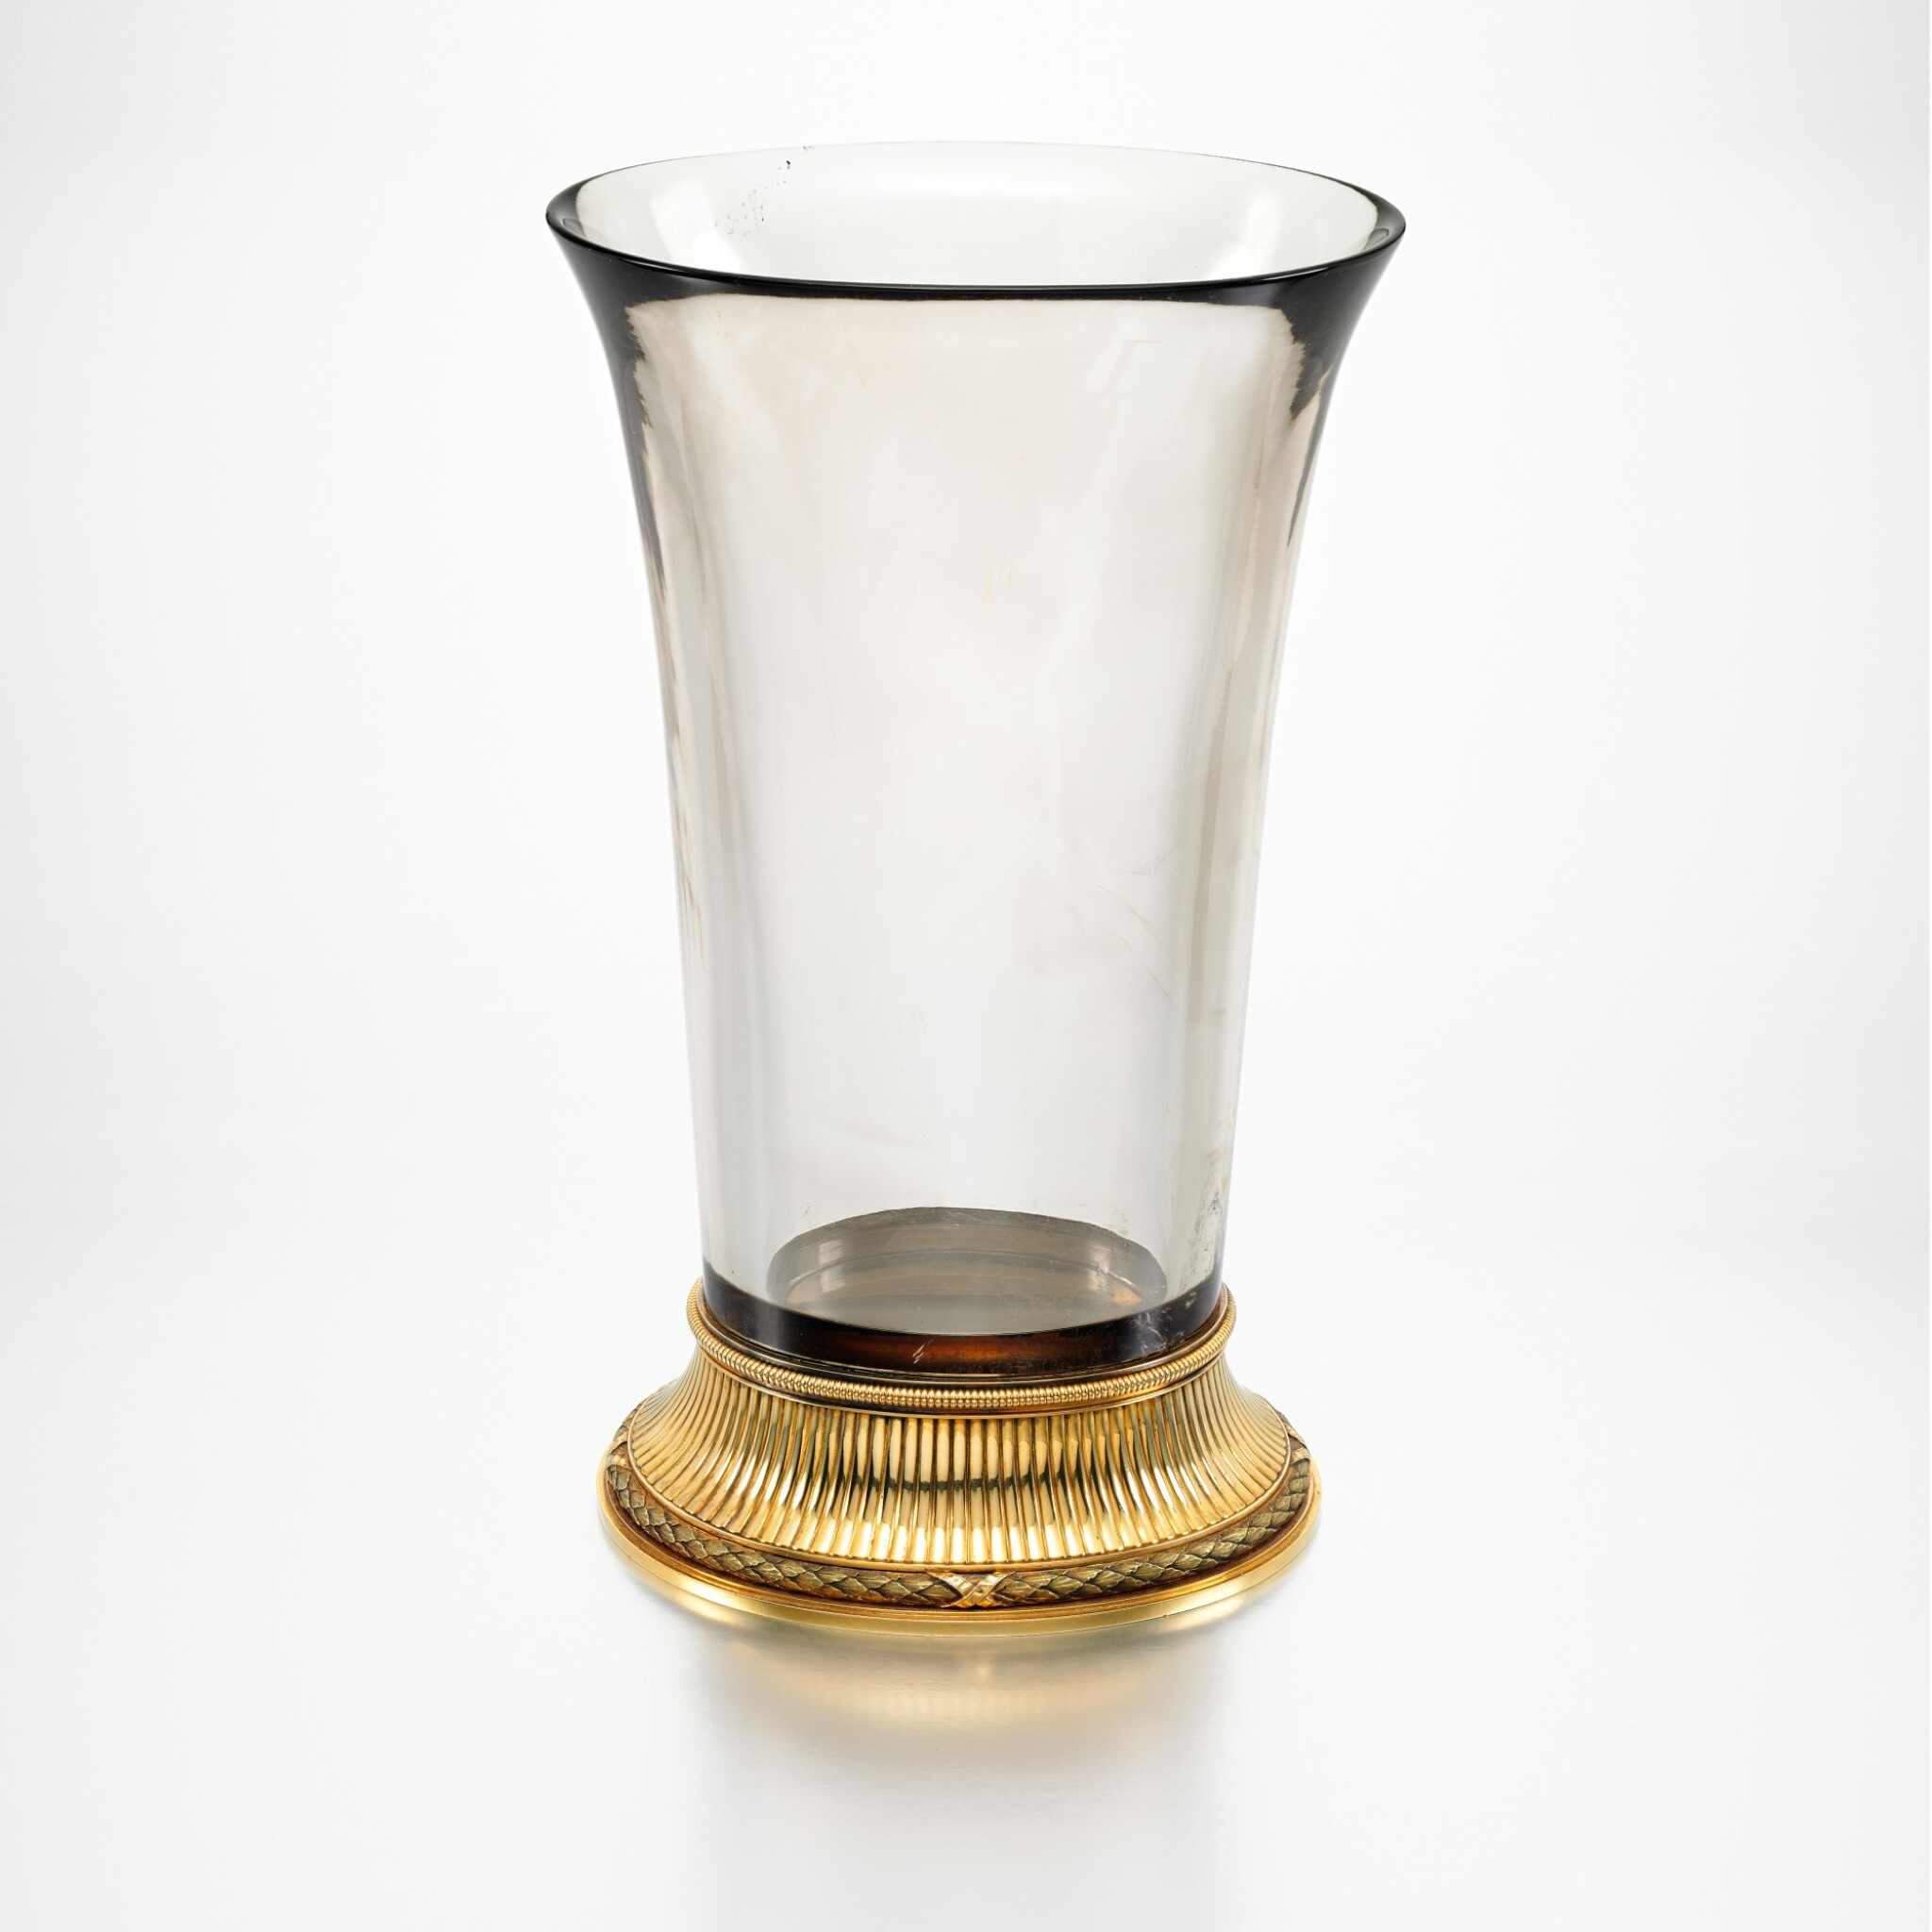 View full screen - View 1 of Lot 12. THE IMPERIAL 'BALLETTA' VASE: A RARE AND IMPORTANT FABERGÉ TWO-COLOUR GOLD-MOUNTED SMOKY TOPAZ VASE, WORKMASTER MICHAEL PERCHIN, ST PETERSBURG, 1899-1903.